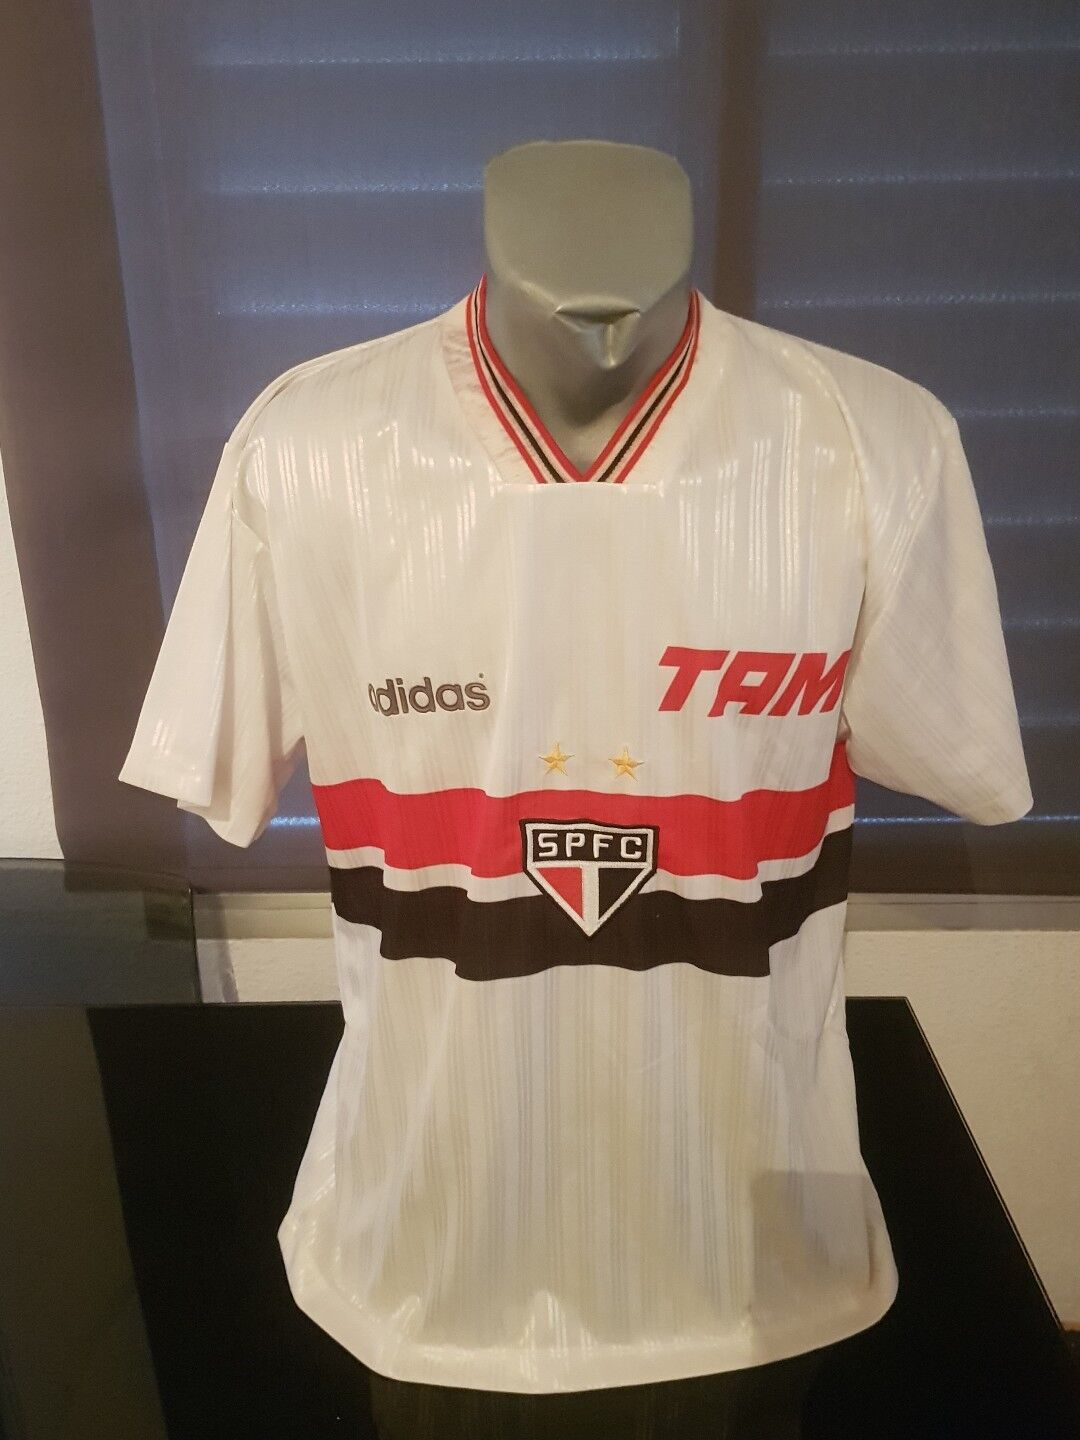 MAILLOT T-SHIRT VINTAGE 90'S F.C ADIDAS-SÃO PAULO F.C 90'S DORSALE N°9 TAILLE XL 26d396